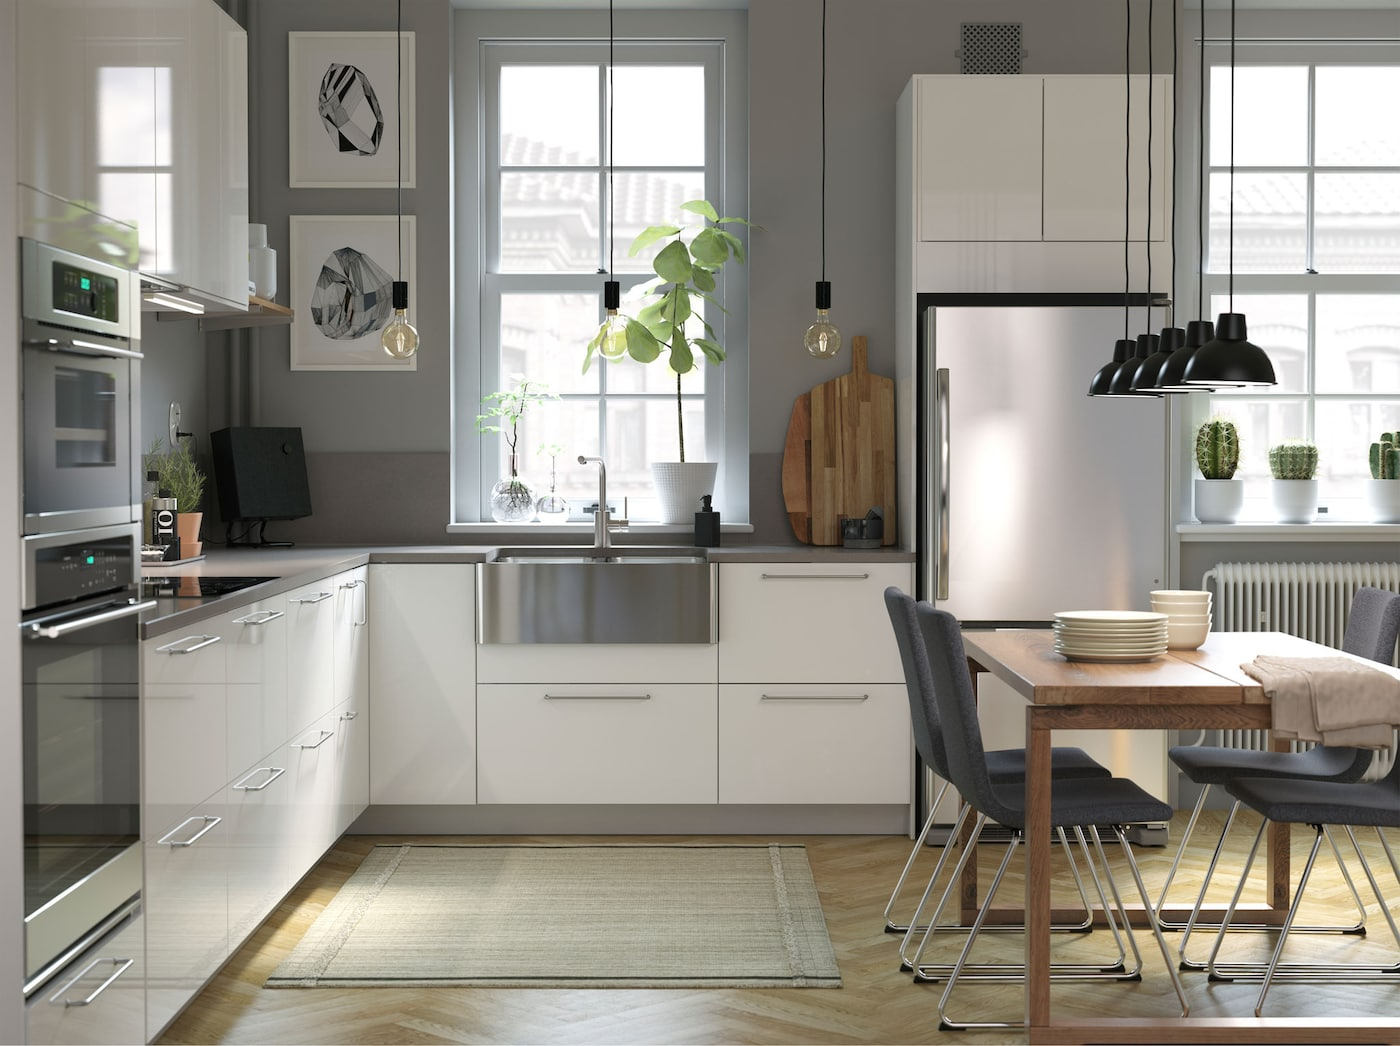 inspiration IKEA Kitchen inspiration IKEA Kitchen Kitchen inspiration IKEA inspiration Kitchen inspiration Kitchen IKEA Kitchen IKEA 0m8nNwvyO